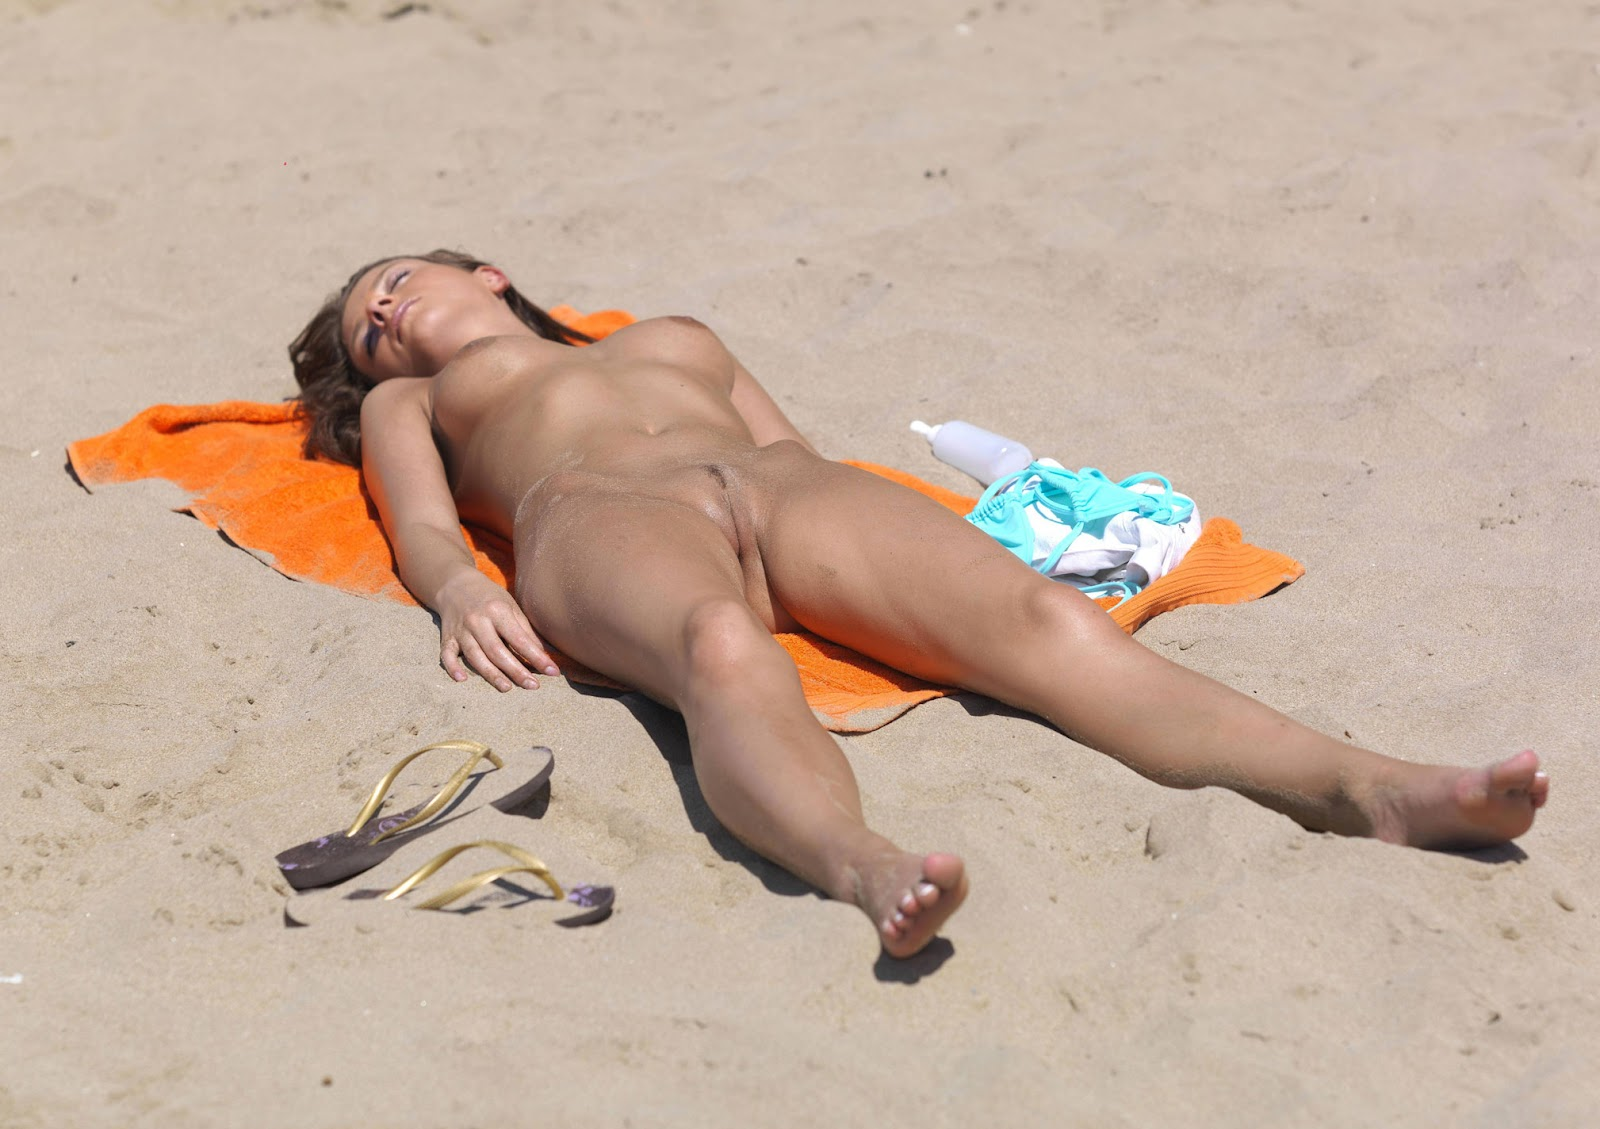 Nude beach women sunbathing